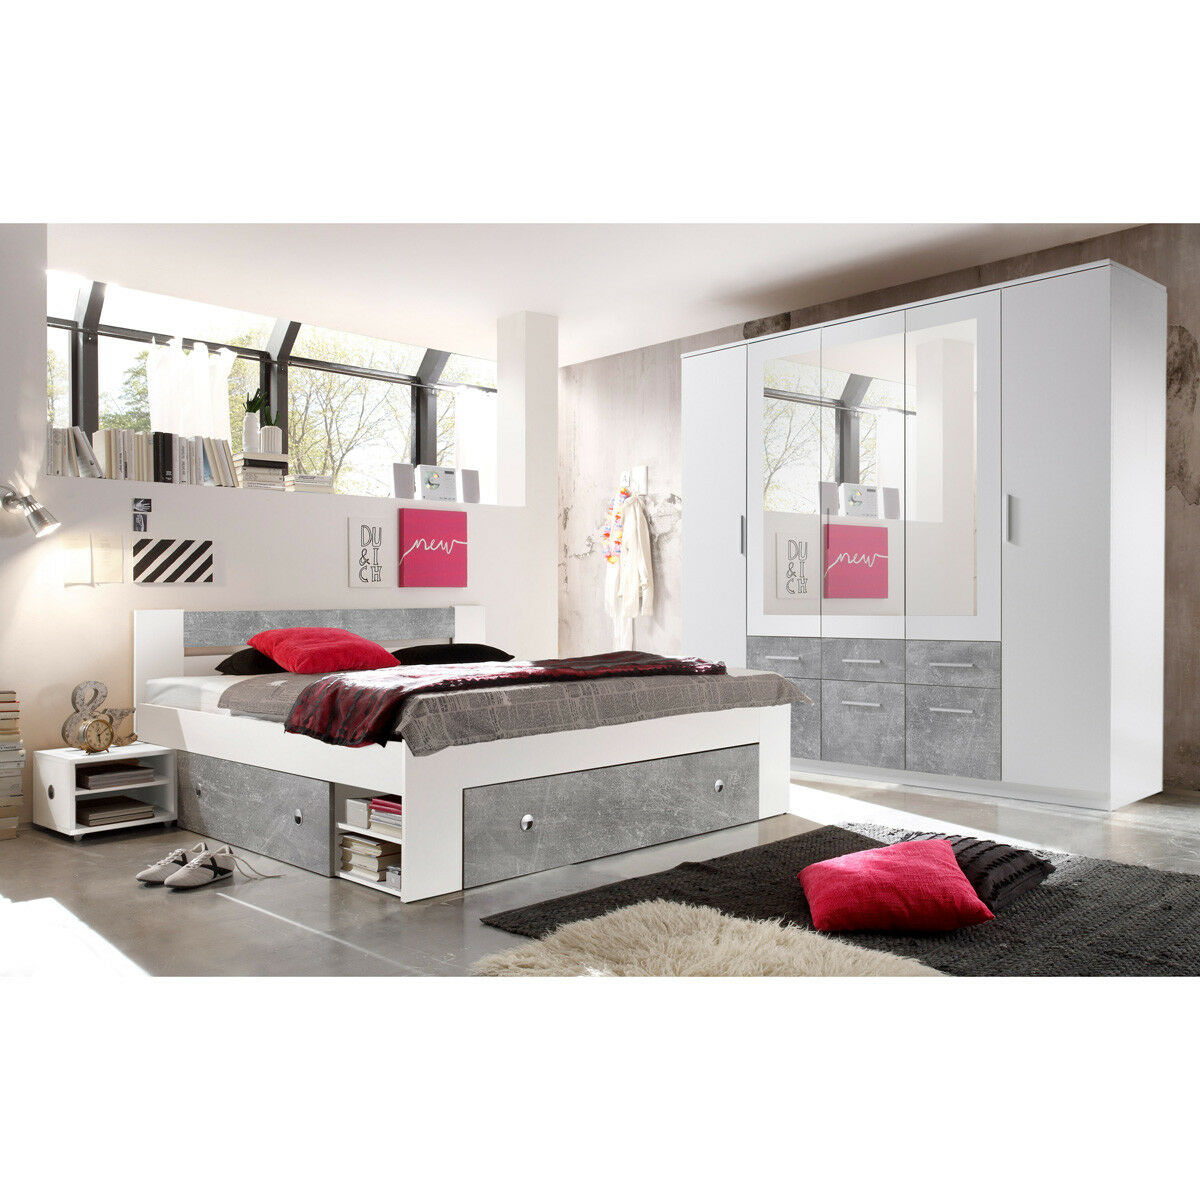 komplett schlafzimmer bett 140x200 deko r ckwand schlafzimmer kopfkissen 80 x orientalisch. Black Bedroom Furniture Sets. Home Design Ideas